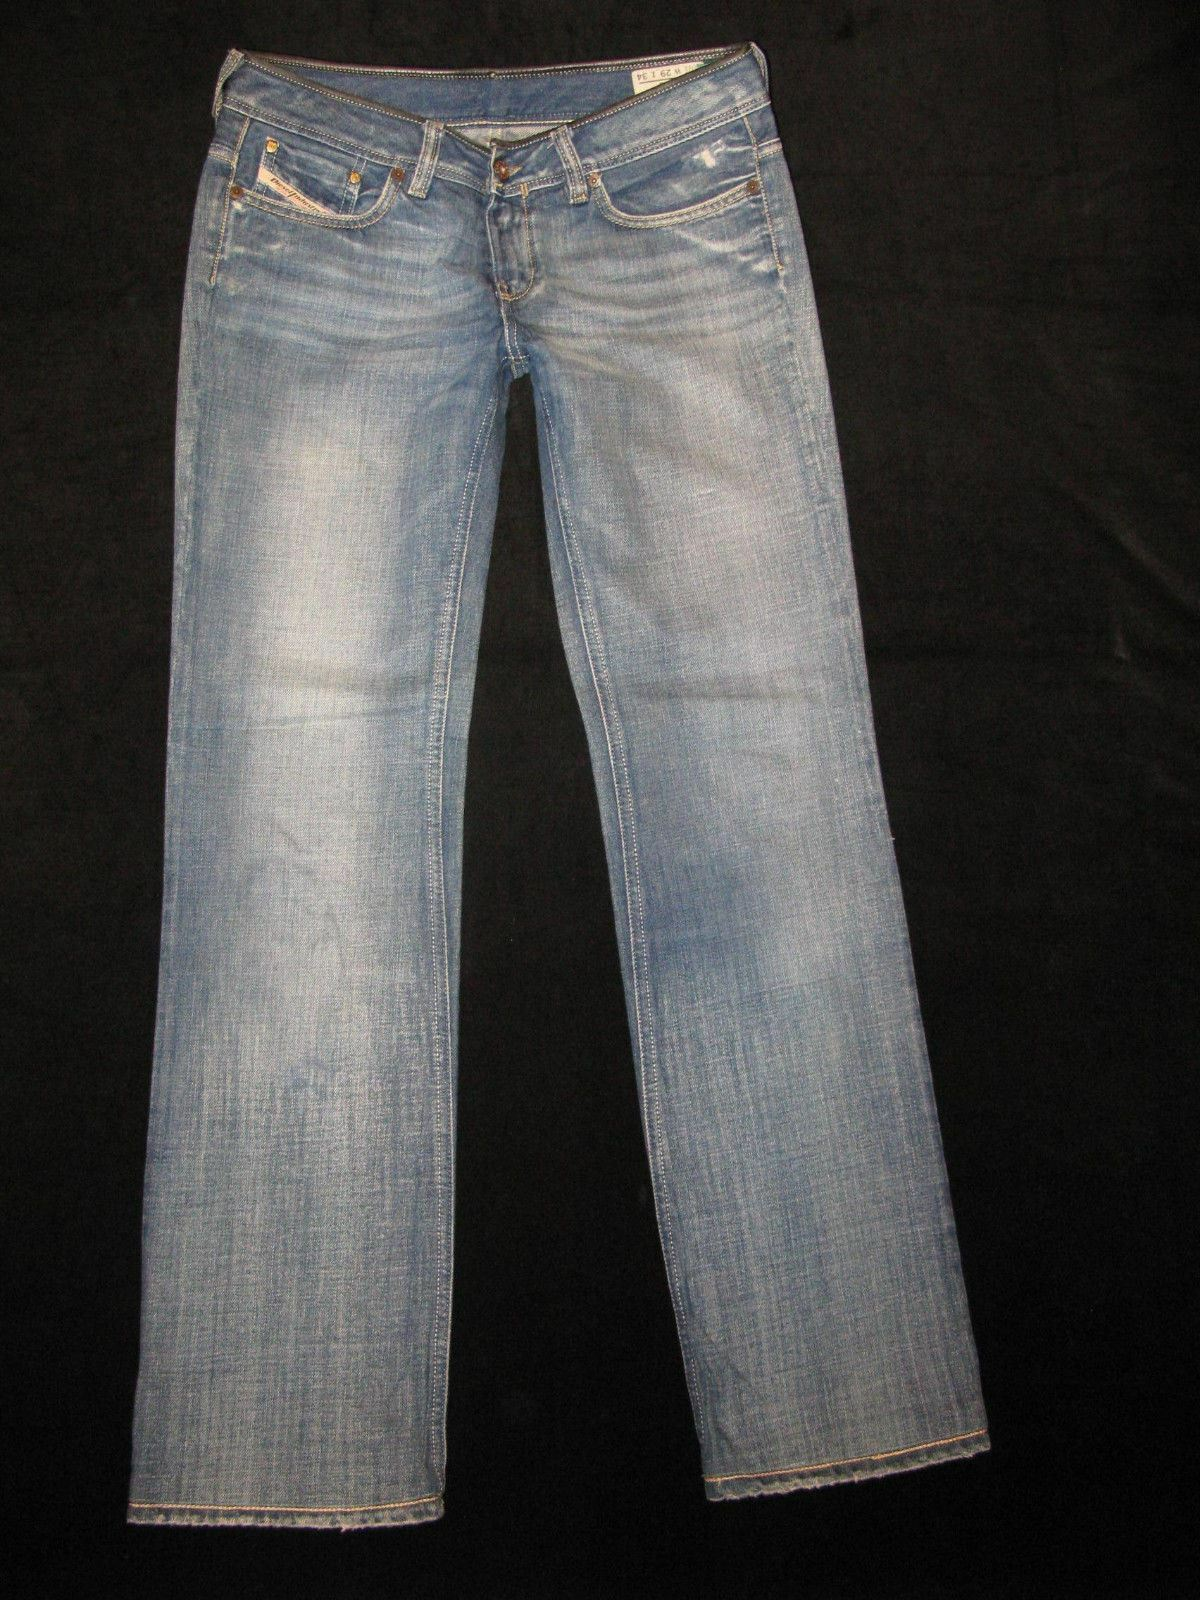 Diesel Bebel Jeans Womens Sz 29 Low Straight Leg 100% Cotton Distressed Wash